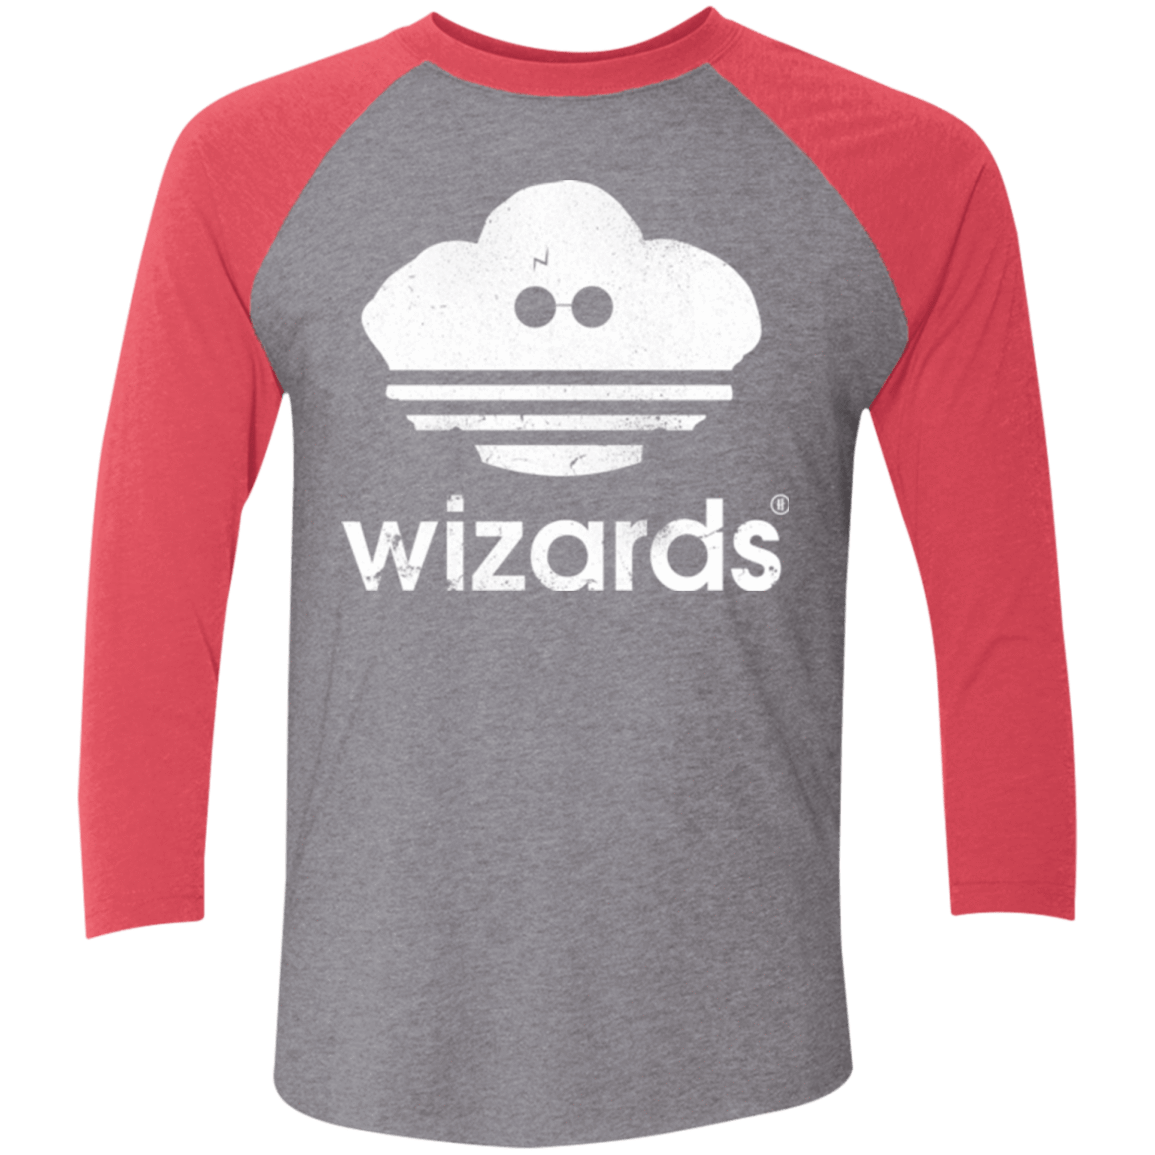 T-Shirts Premium Heather/ Vintage Red / X-Small Wizards Men's Triblend 3/4 Sleeve